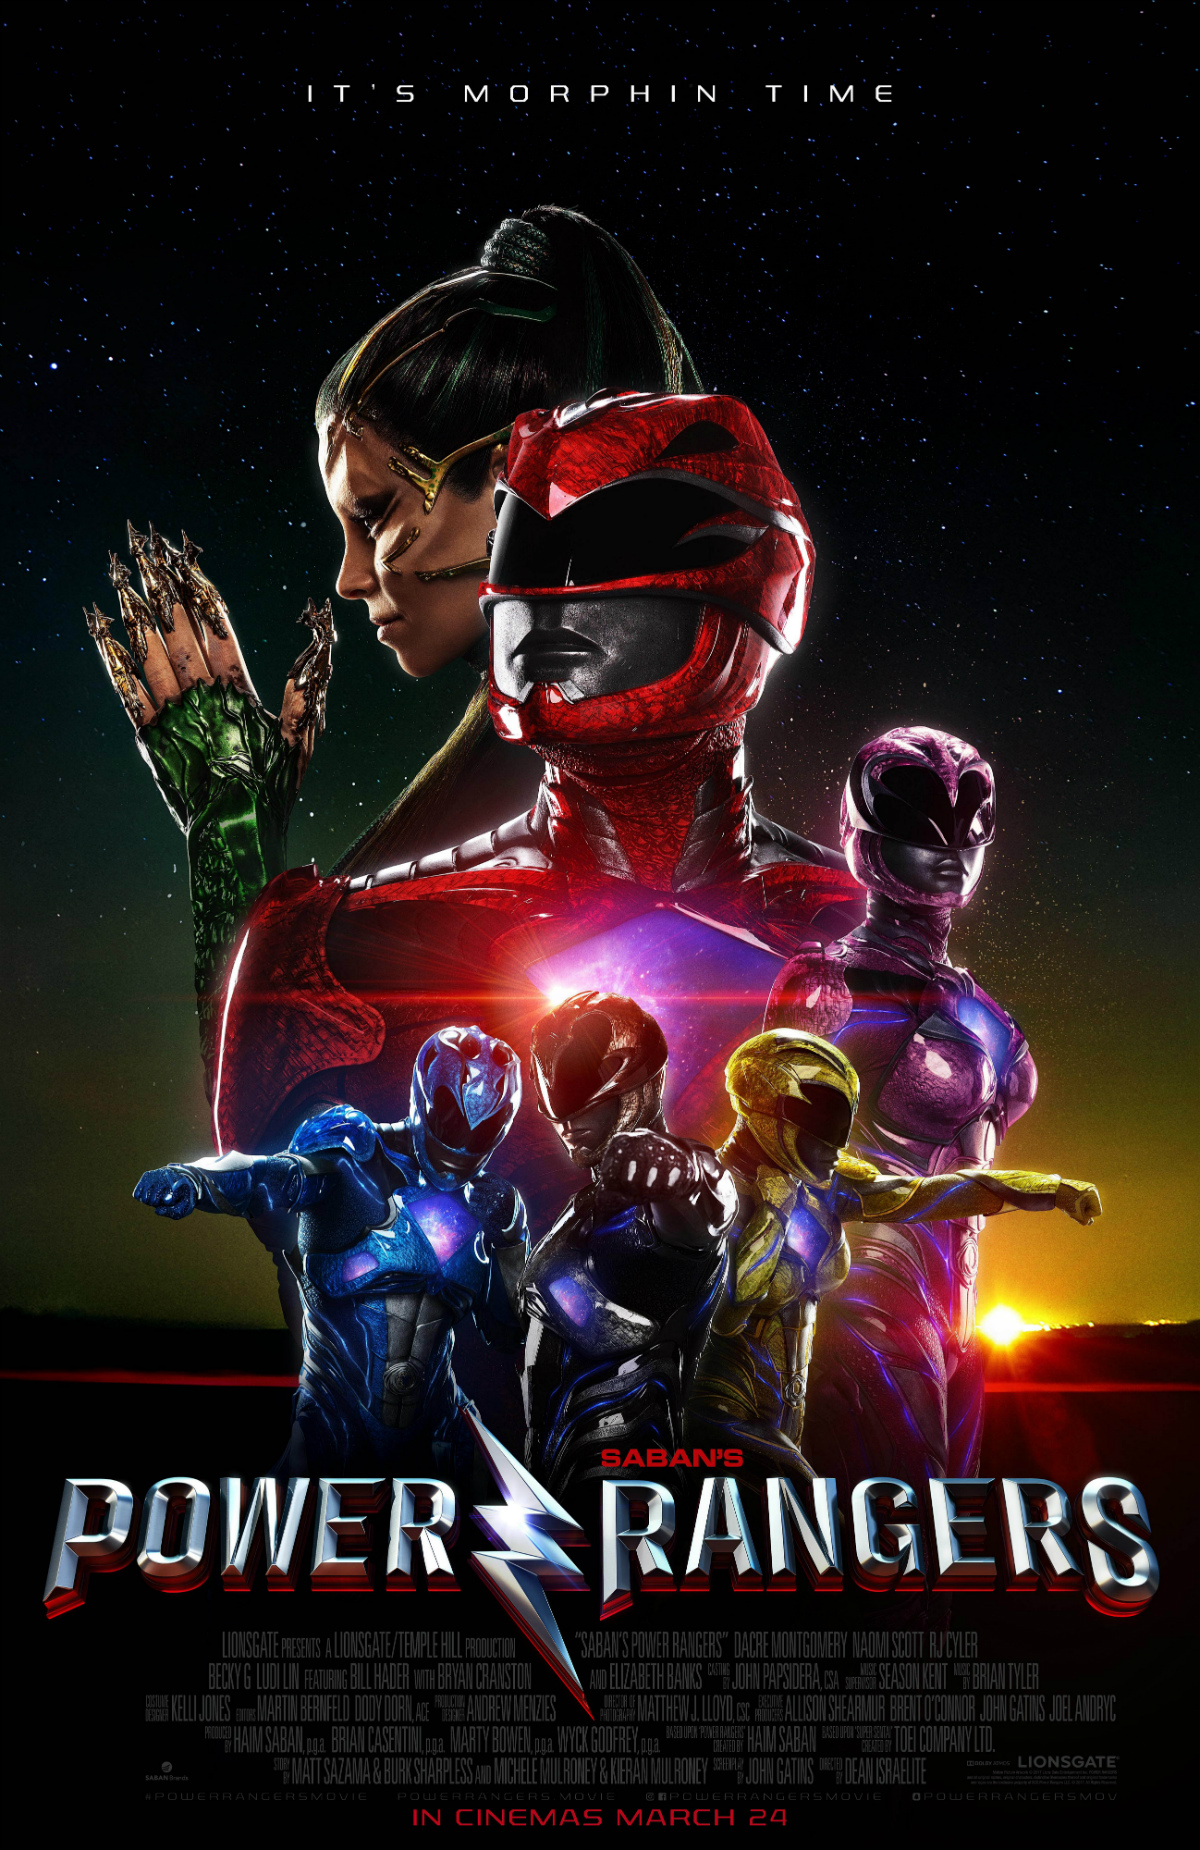 Power Rangers Poster Draws The Line Between Friend And Foe